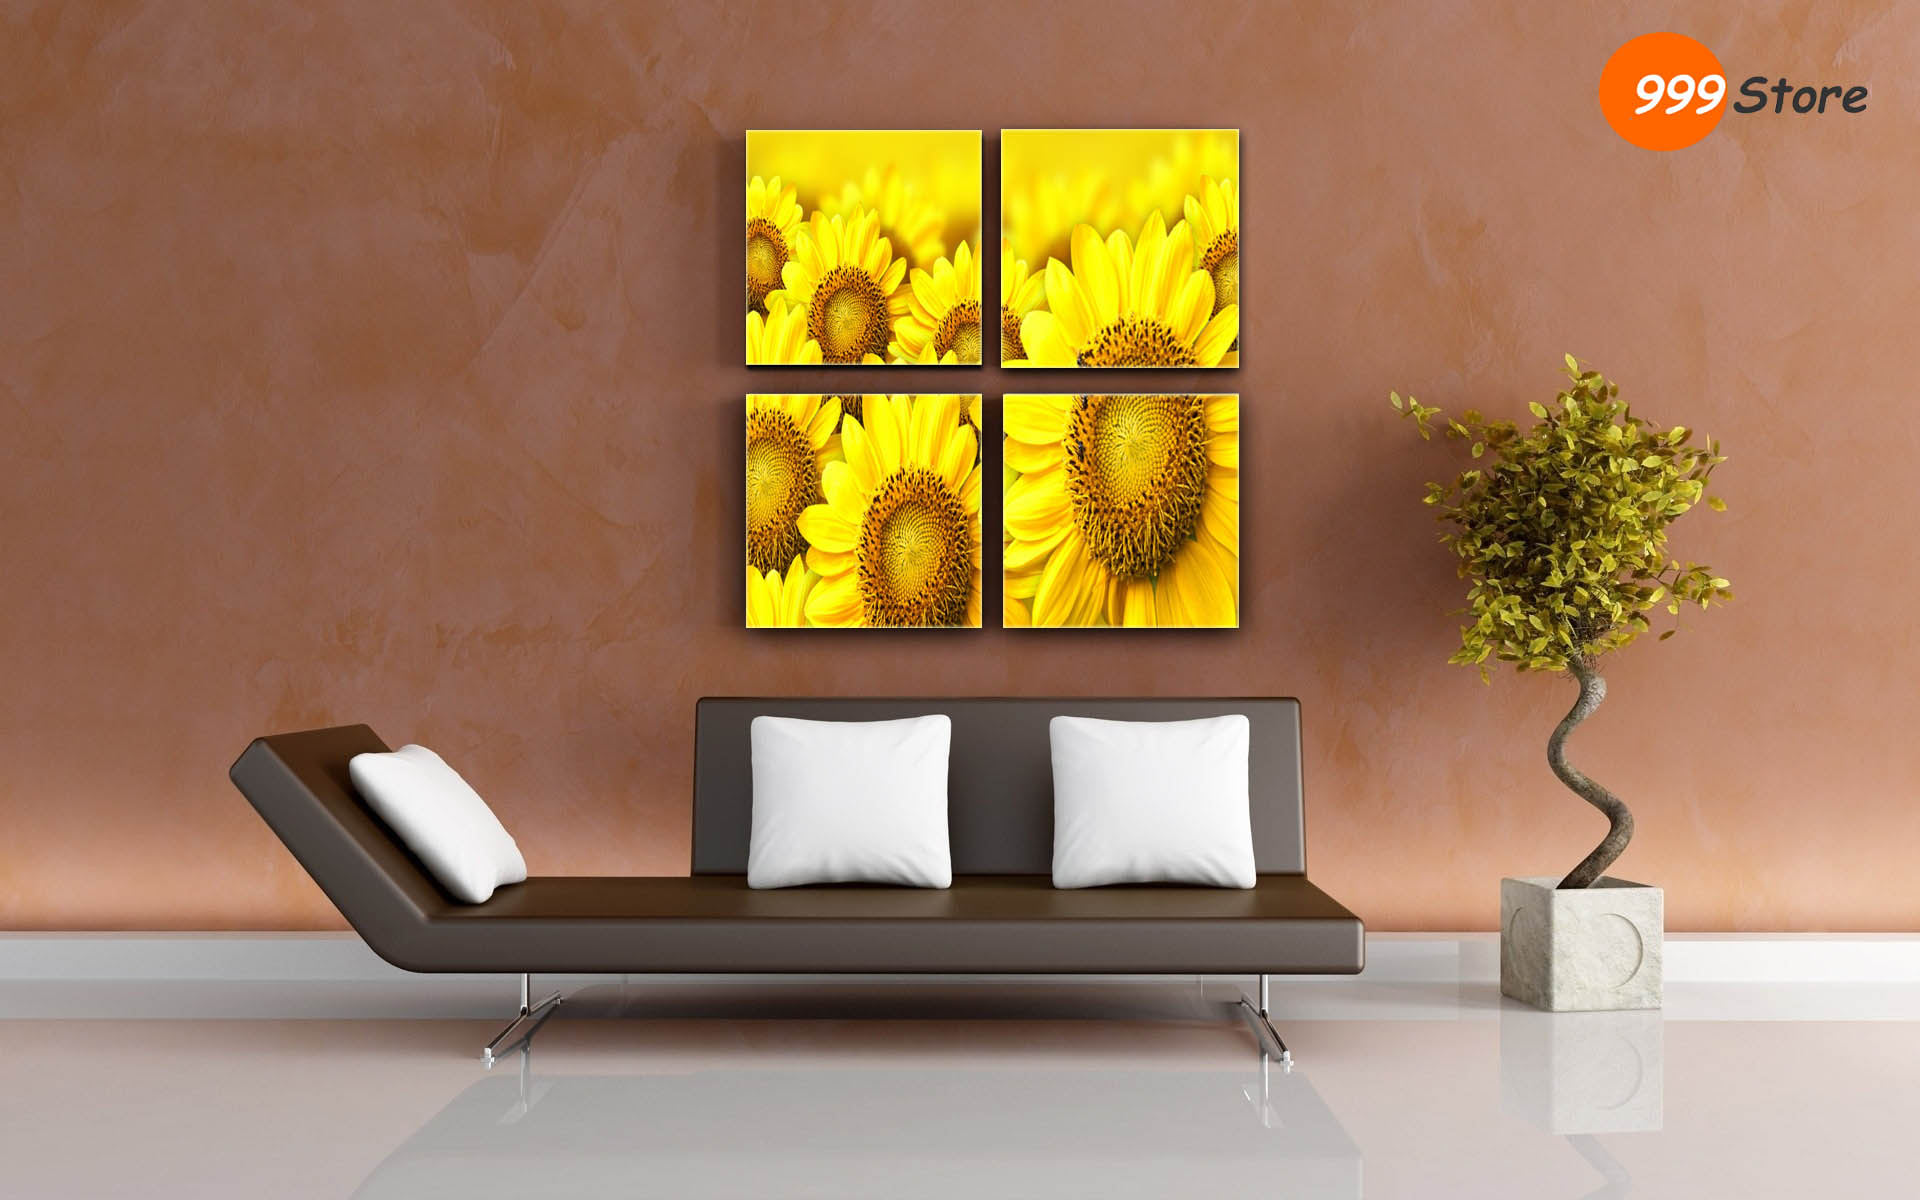 Buy multiple frames living room sun flowers canvas printed wall art painting 4 fra online Canvas prints for living room